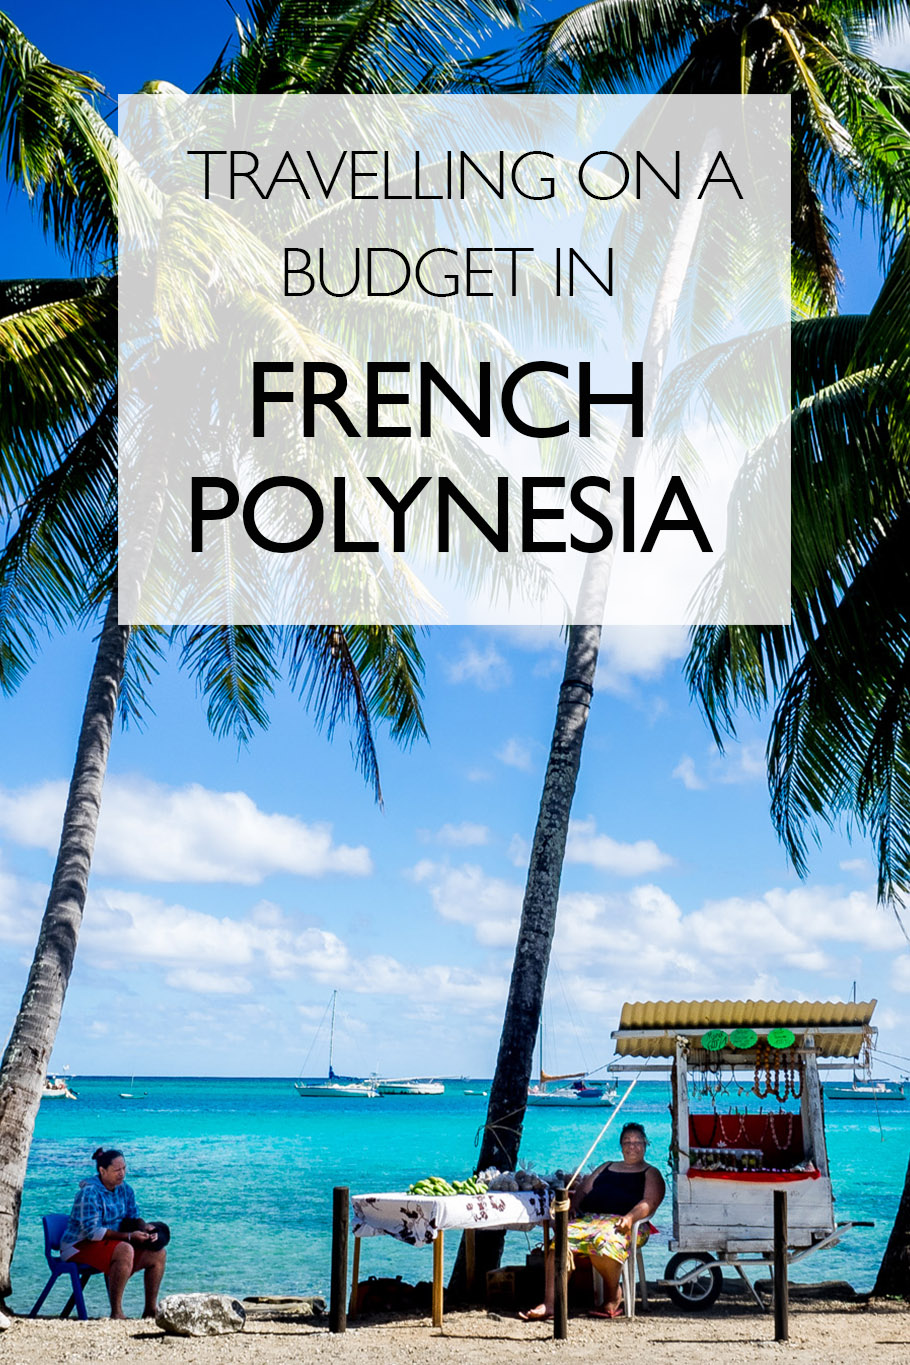 Travelling on a Budget in French Polynesia